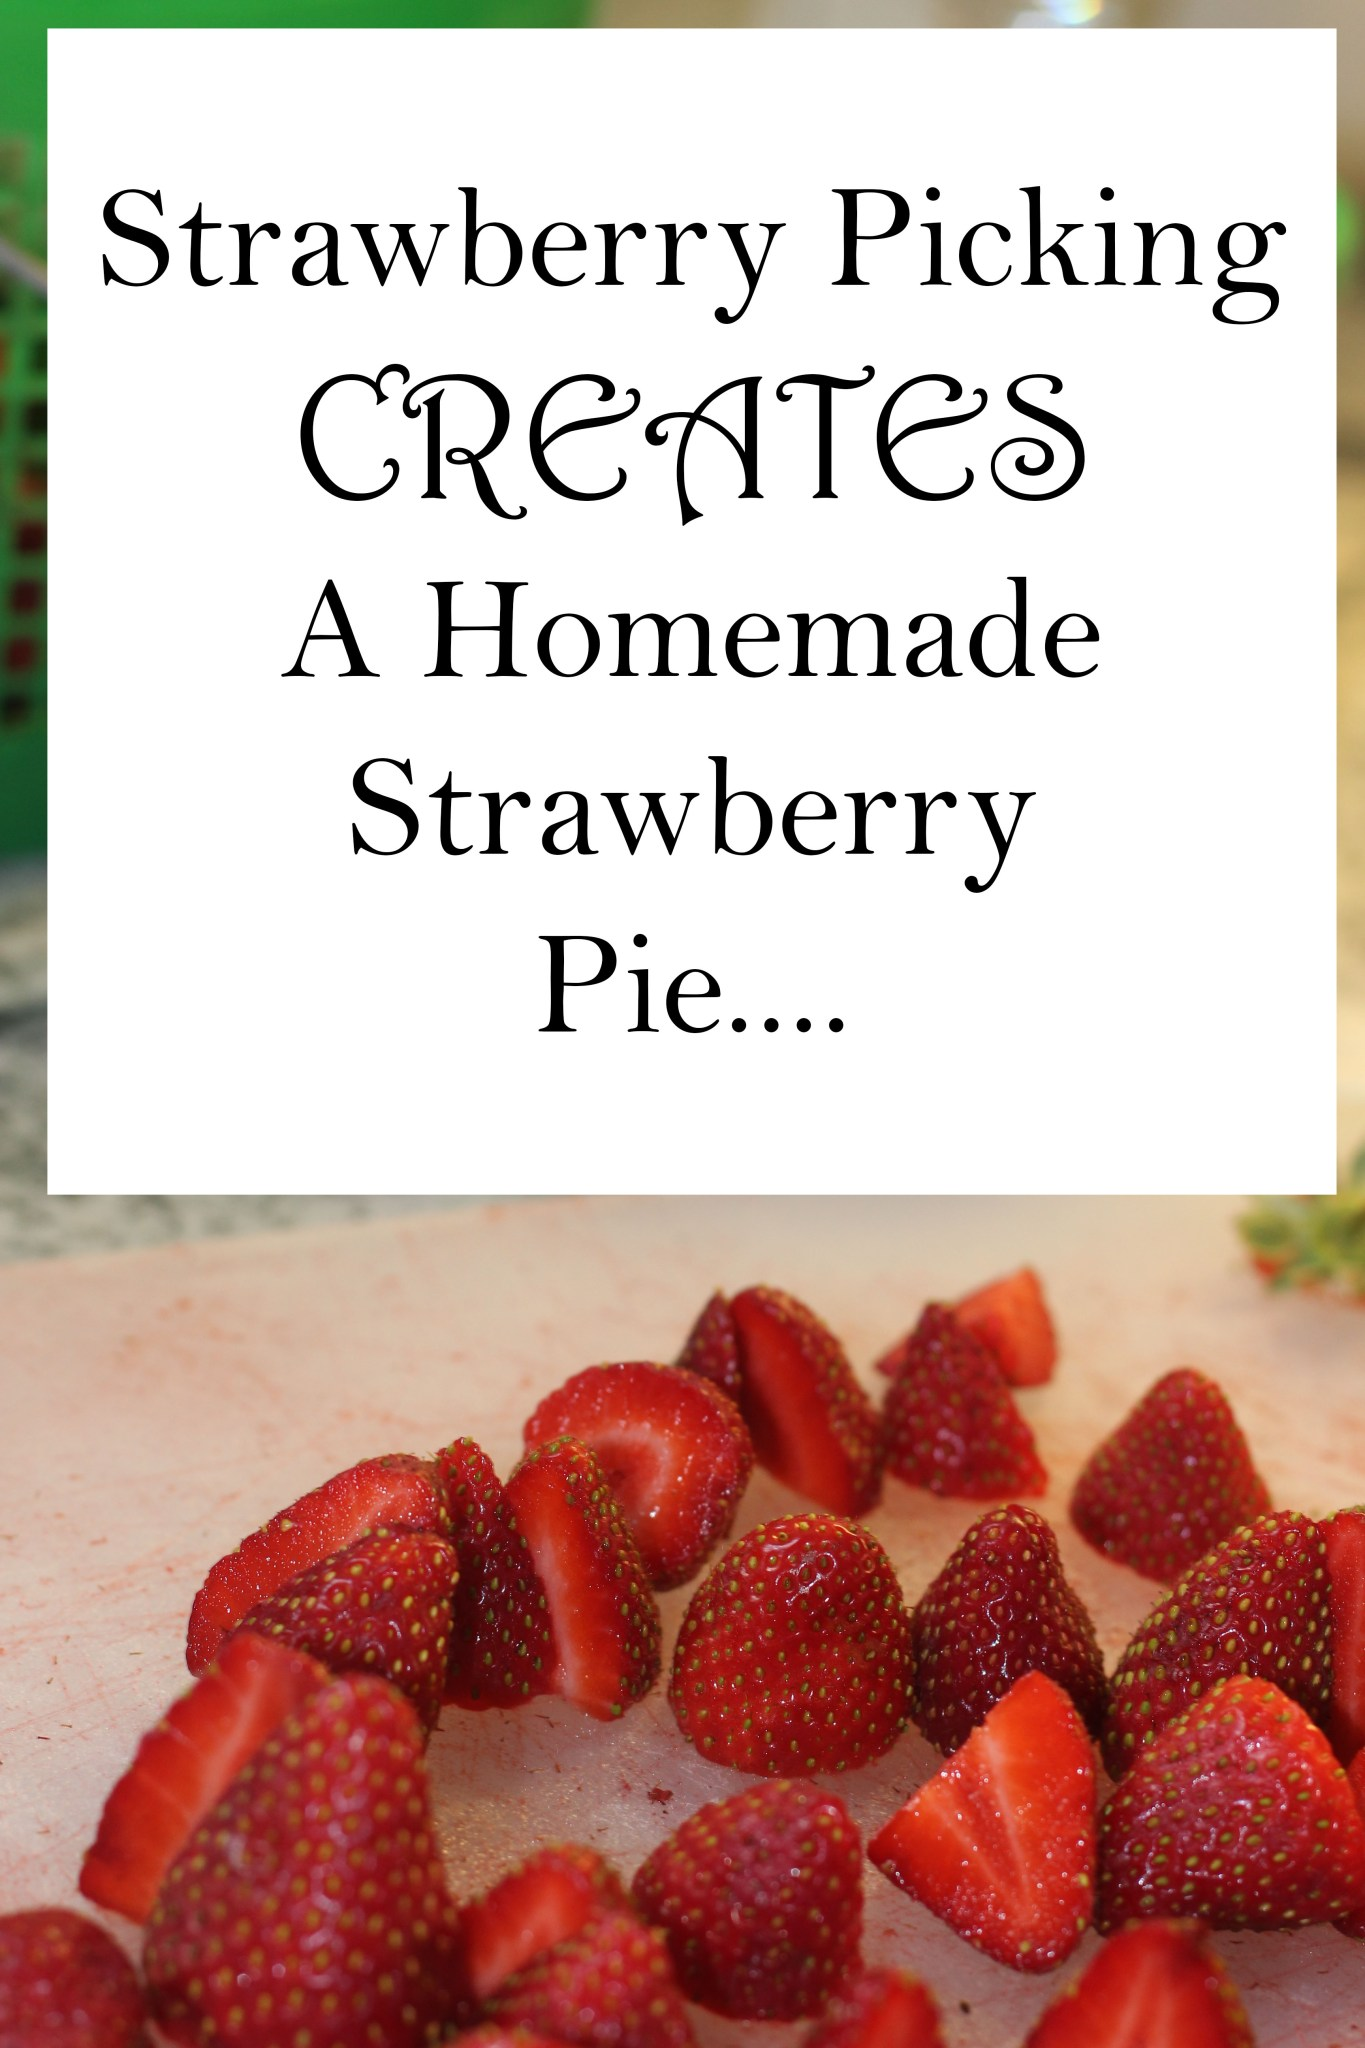 Homemade Strawberry Pie….